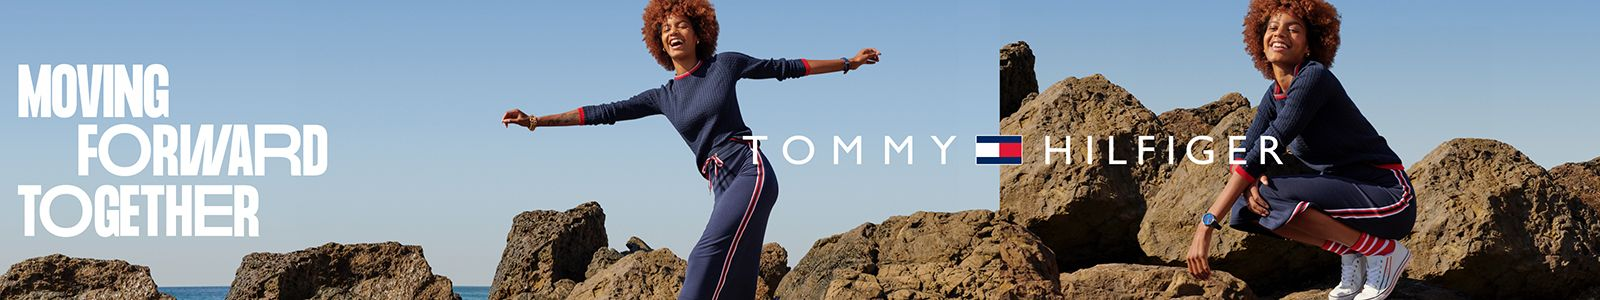 Moving Forward Together, Tommy Hilfiger